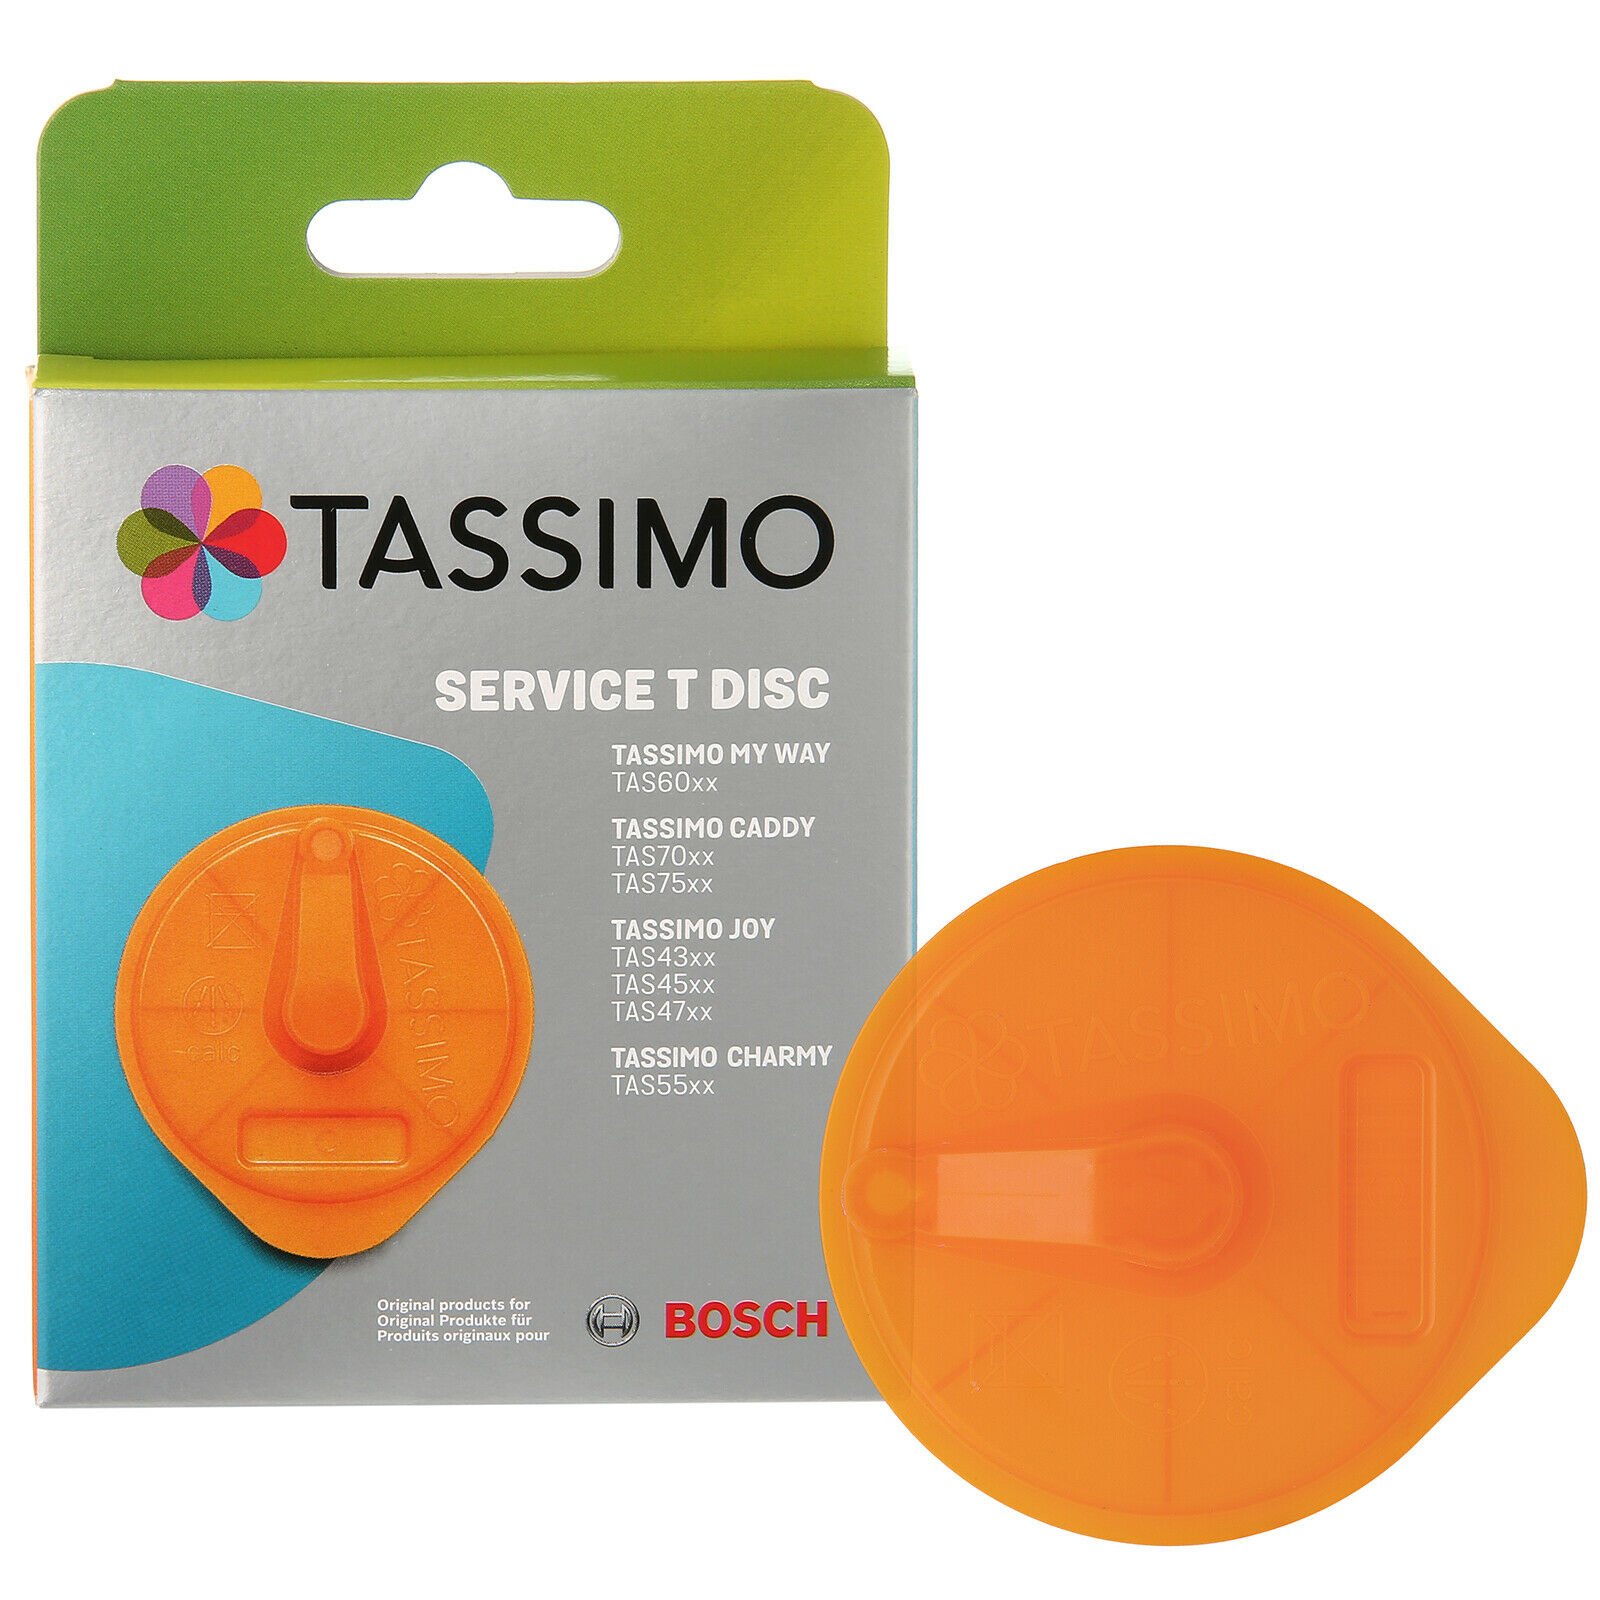 genuine bosch tassimo coffee descaler service t disc cleaning disc 00576837 picclick uk. Black Bedroom Furniture Sets. Home Design Ideas